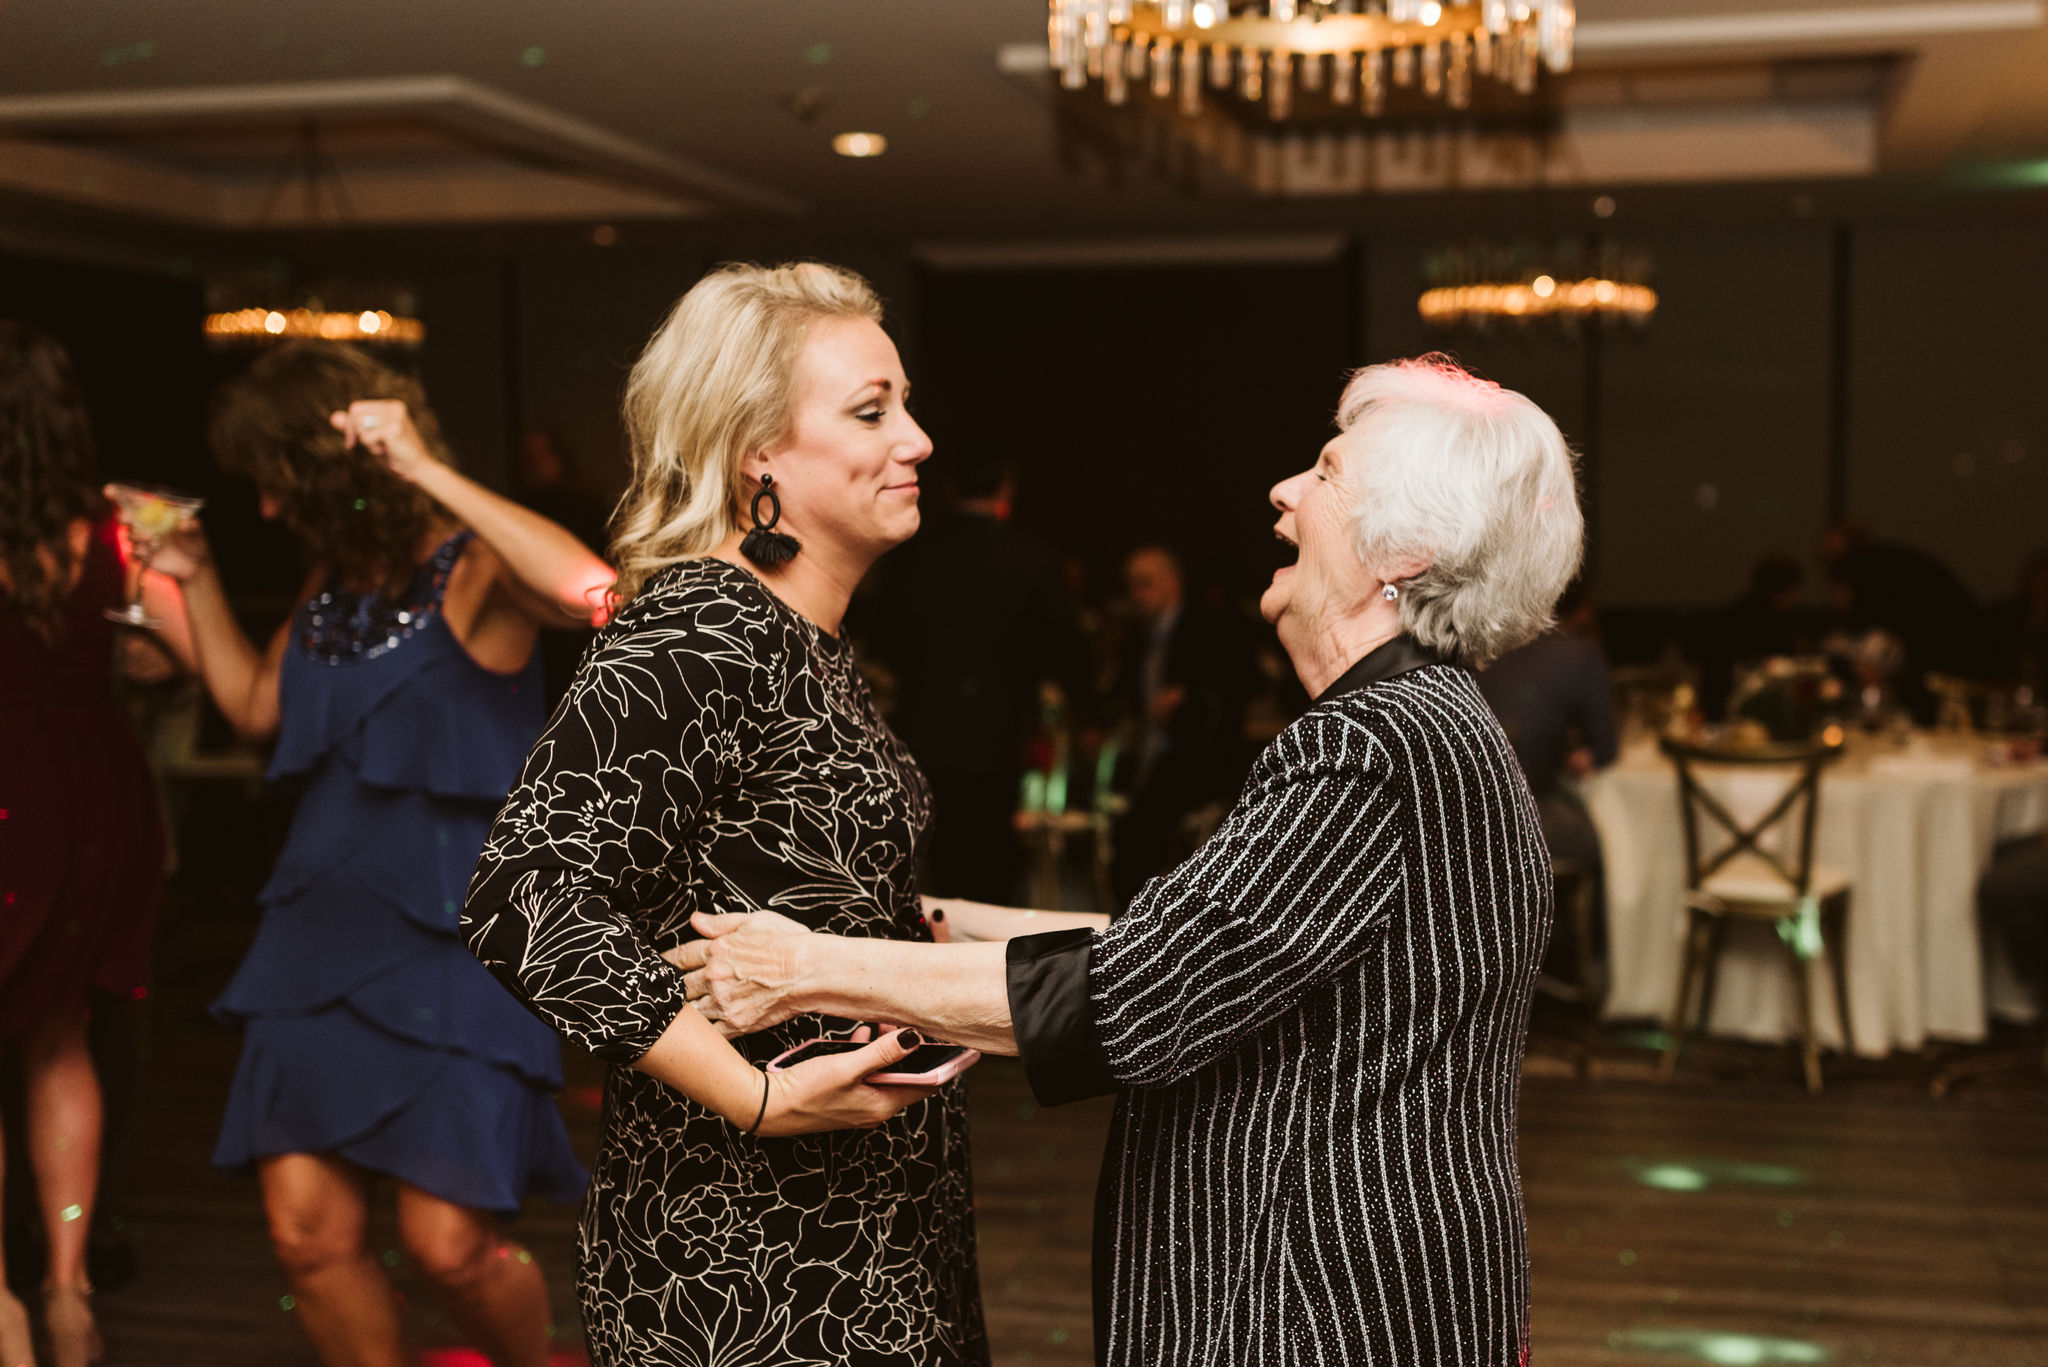 Phoenix Maryland, Baltimore Wedding Photographer, Eagle's Nest Country Club, Classic, Romantic, Wedding Guests Laughing Together on Dancefloor at Reception